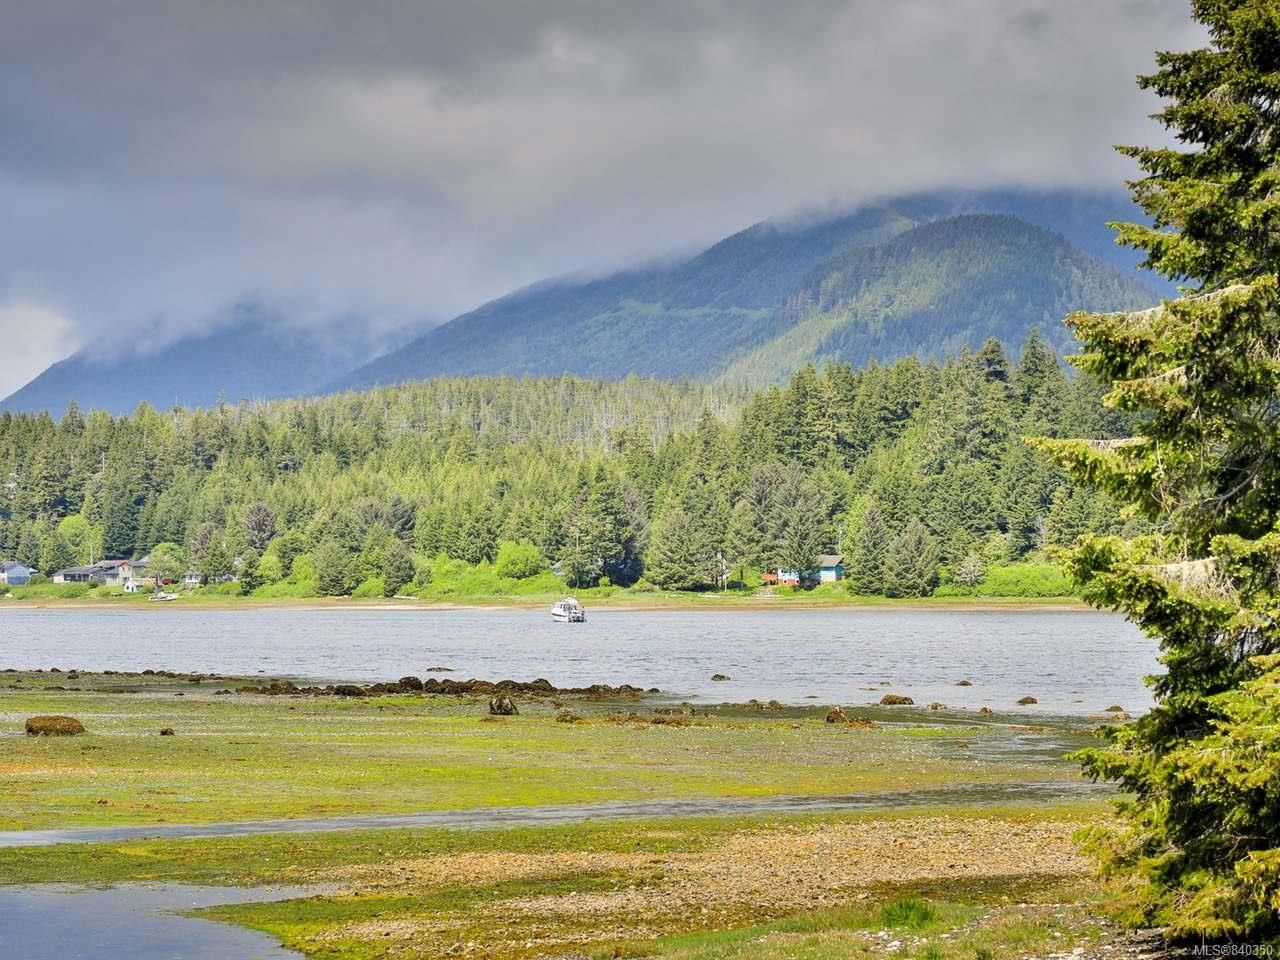 Photo 81: Photos: 1068 Helen Rd in UCLUELET: PA Ucluelet House for sale (Port Alberni)  : MLS®# 840350